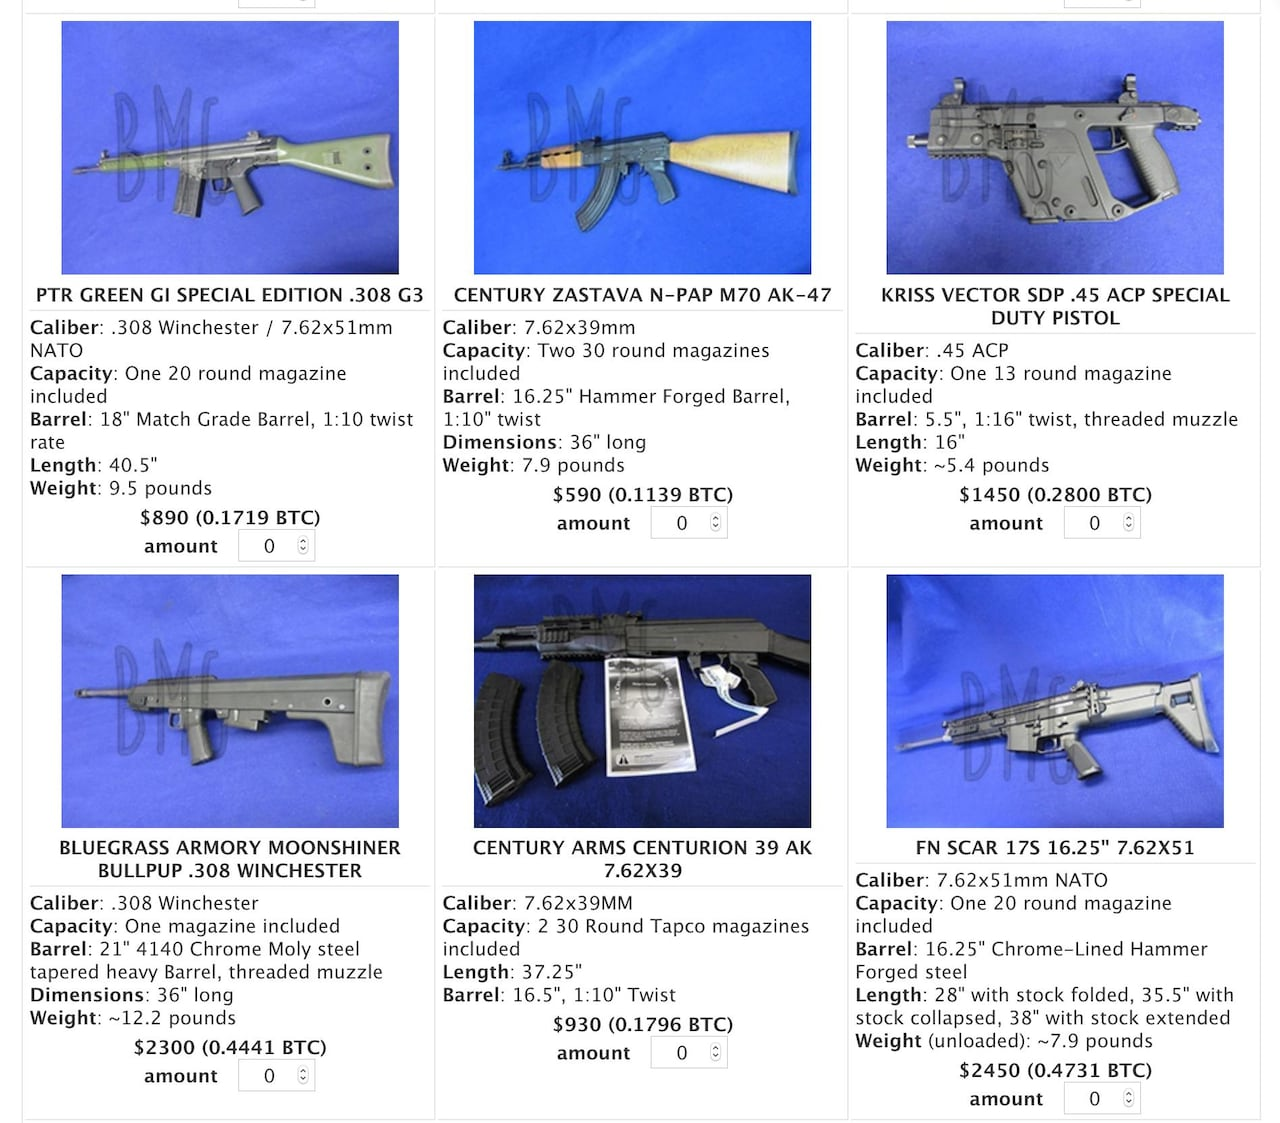 Black market guns: Where they're coming from and how they